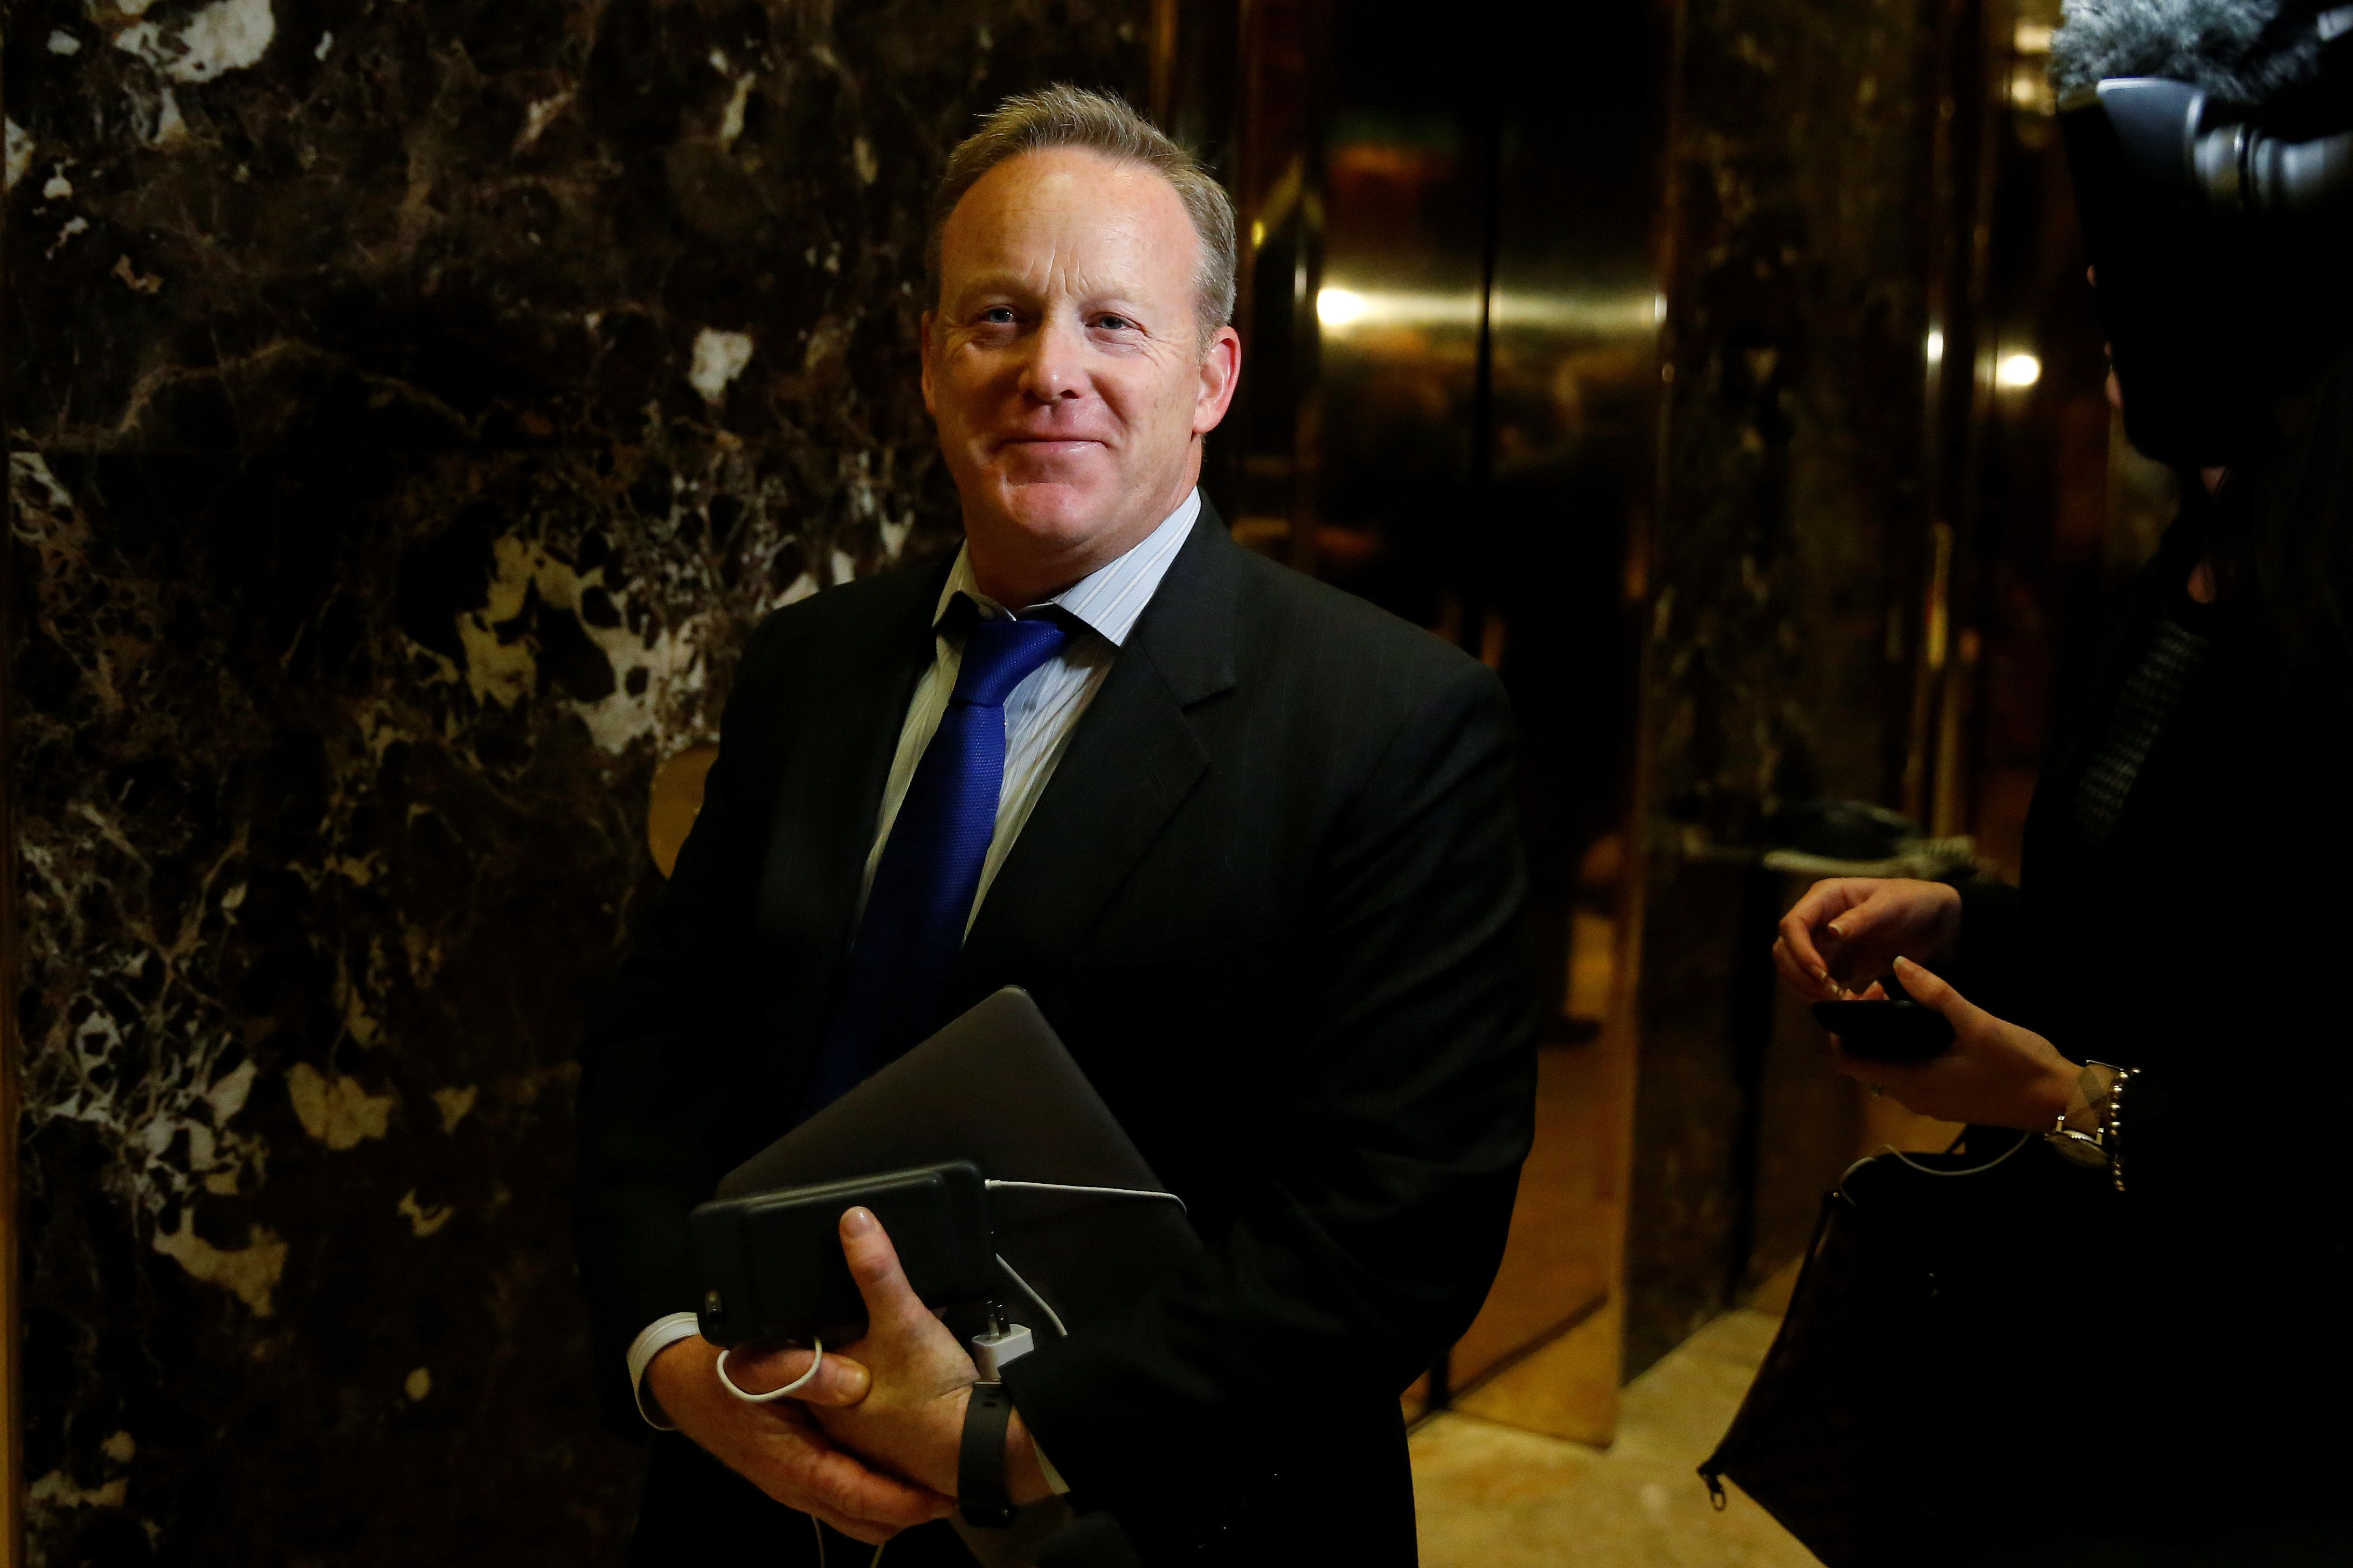 Sean Spicer has been named White House Press secretary.